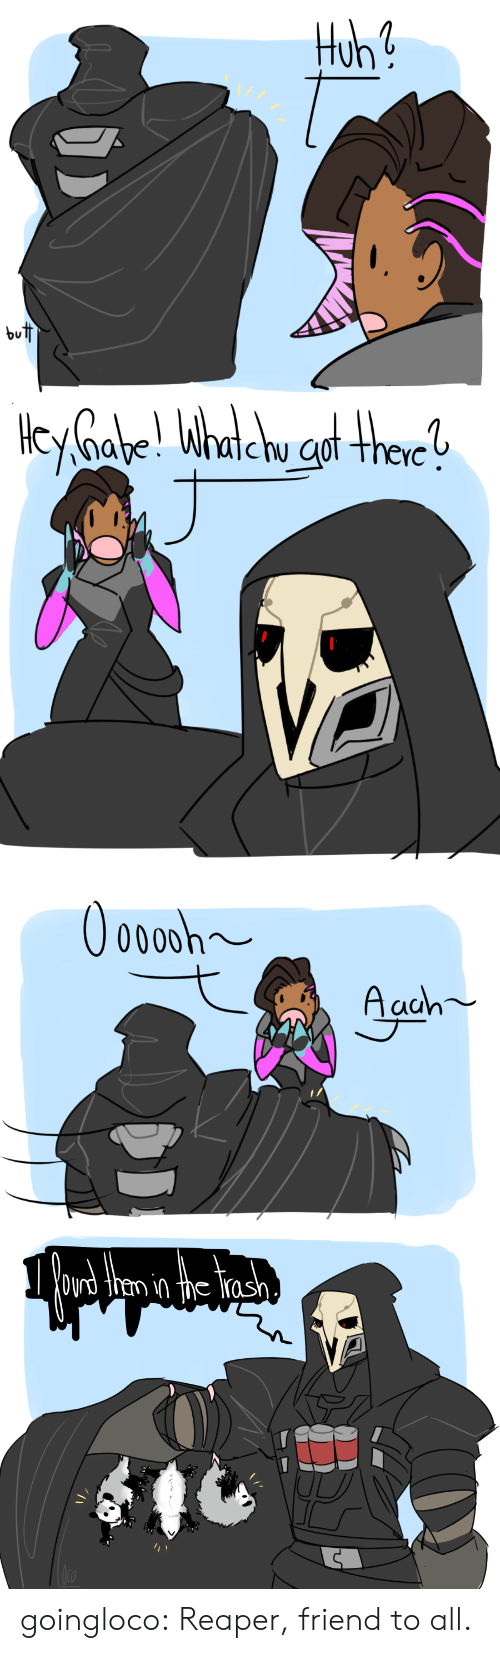 ras: but   0000h  Aaah   Oyrd then in the ras goingloco:  Reaper, friend to all.